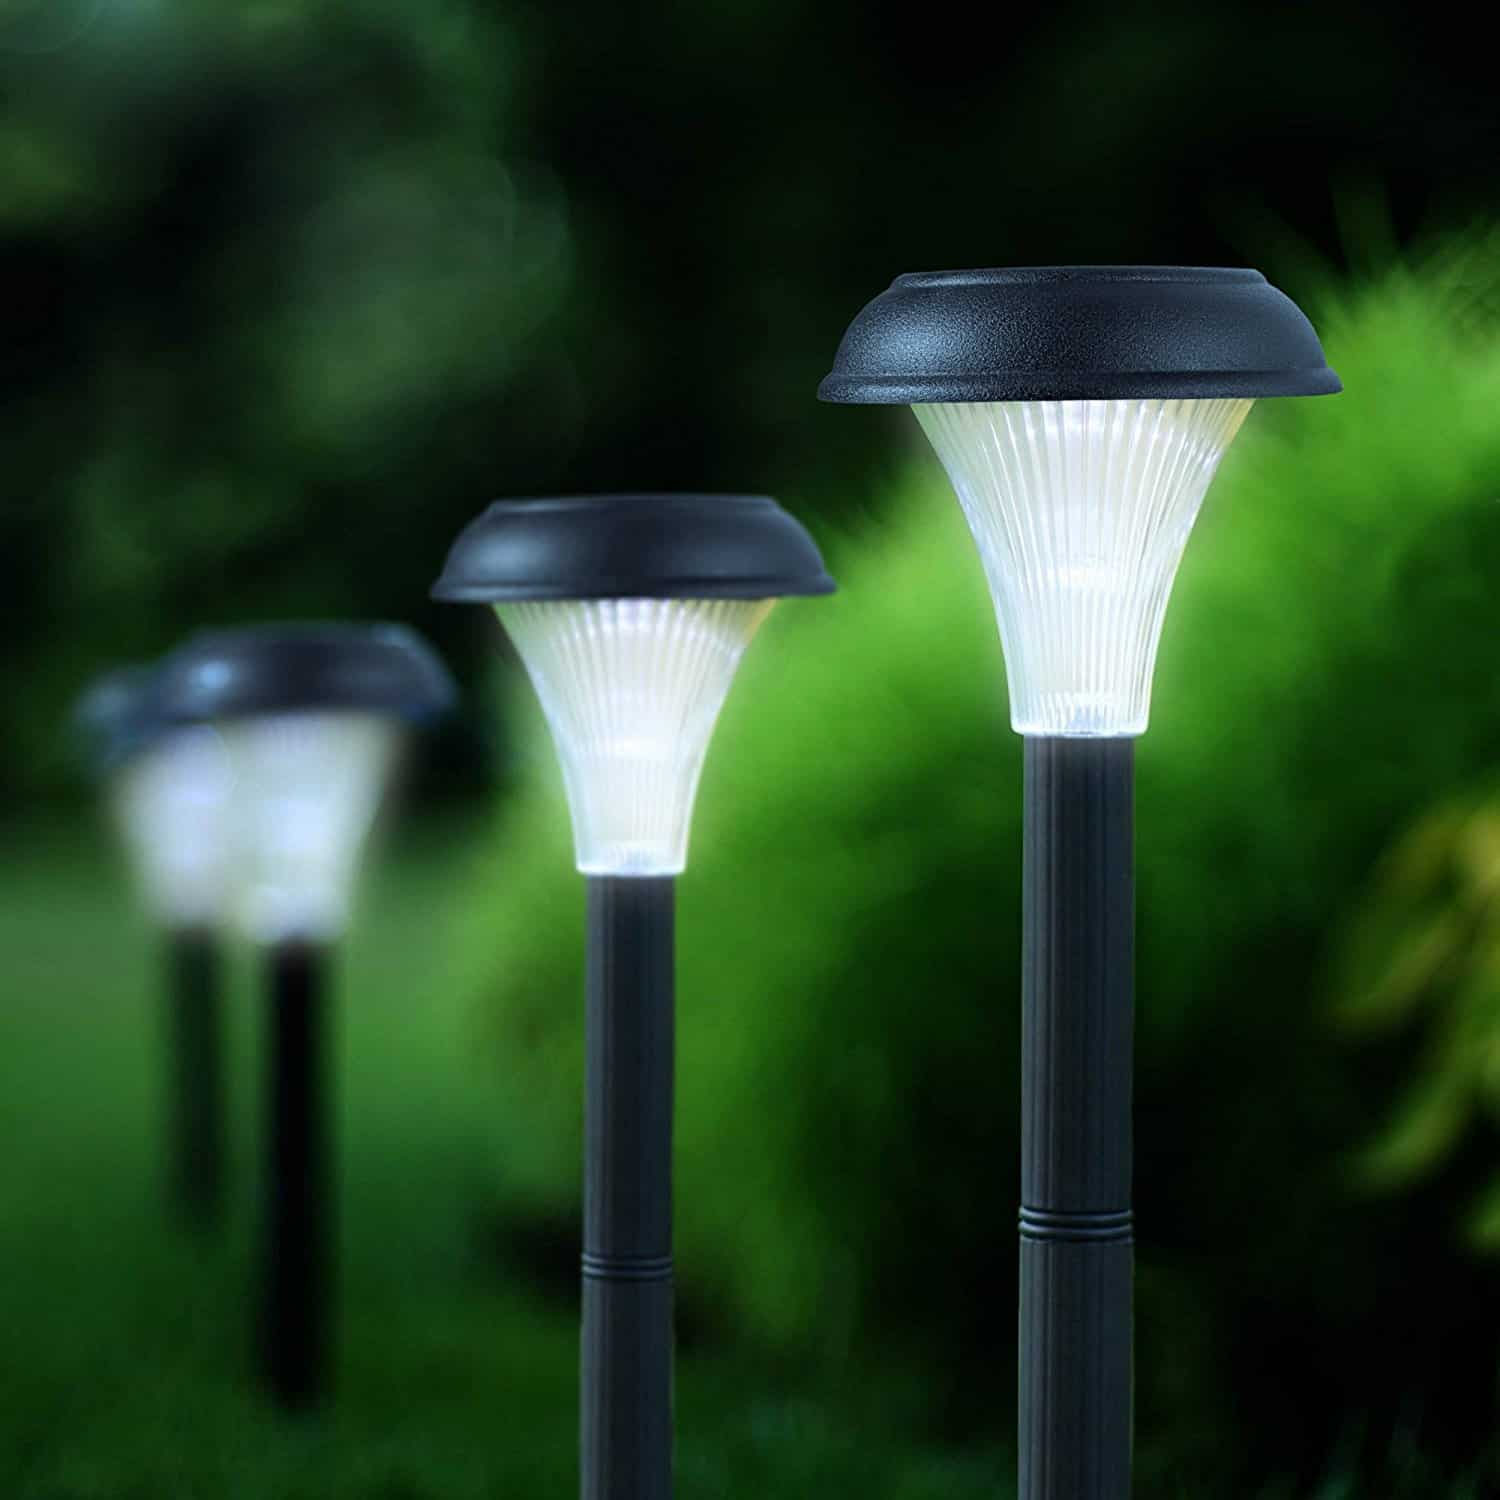 Best Solar Outdoor Patio Lights: Best Solar Garden Lights 2019